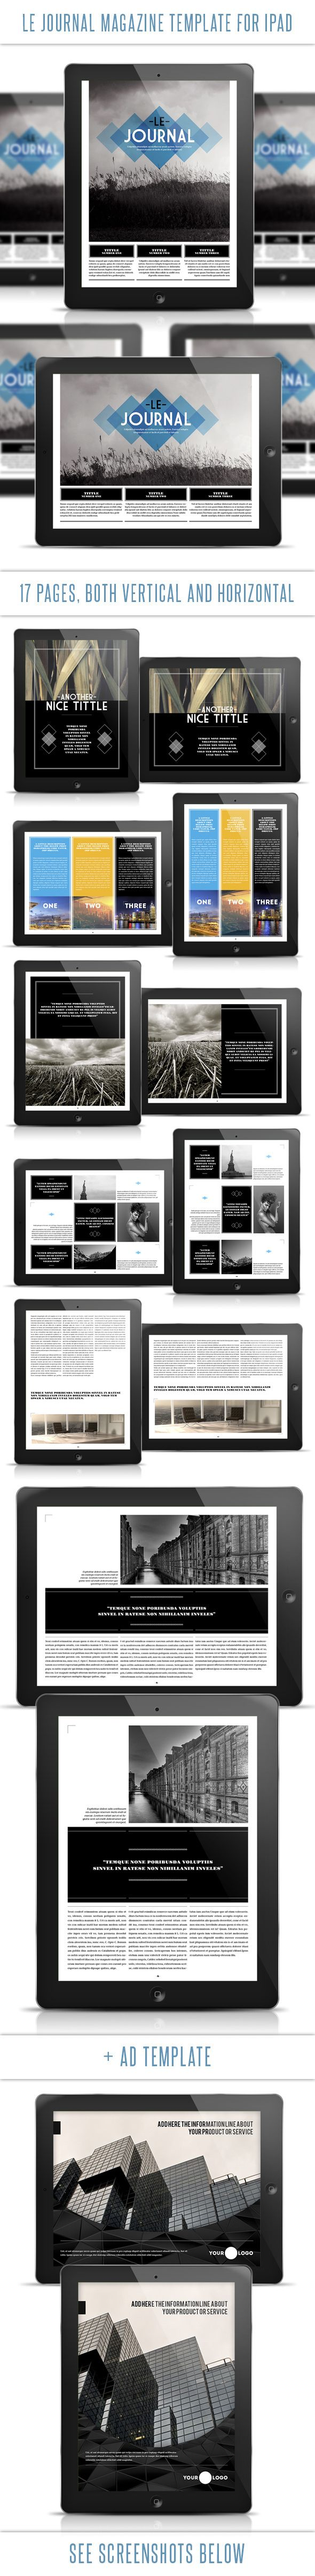 This Ipad tablet magazine template contains a total of 34 pages: 17 portrait view + 17 landscape view. Ipad resolution. Very easy to add your own images and text.    Download from: http://graphicriver.net/item/le-journal-tablet-magazine-template/4682024?ref=luuqas